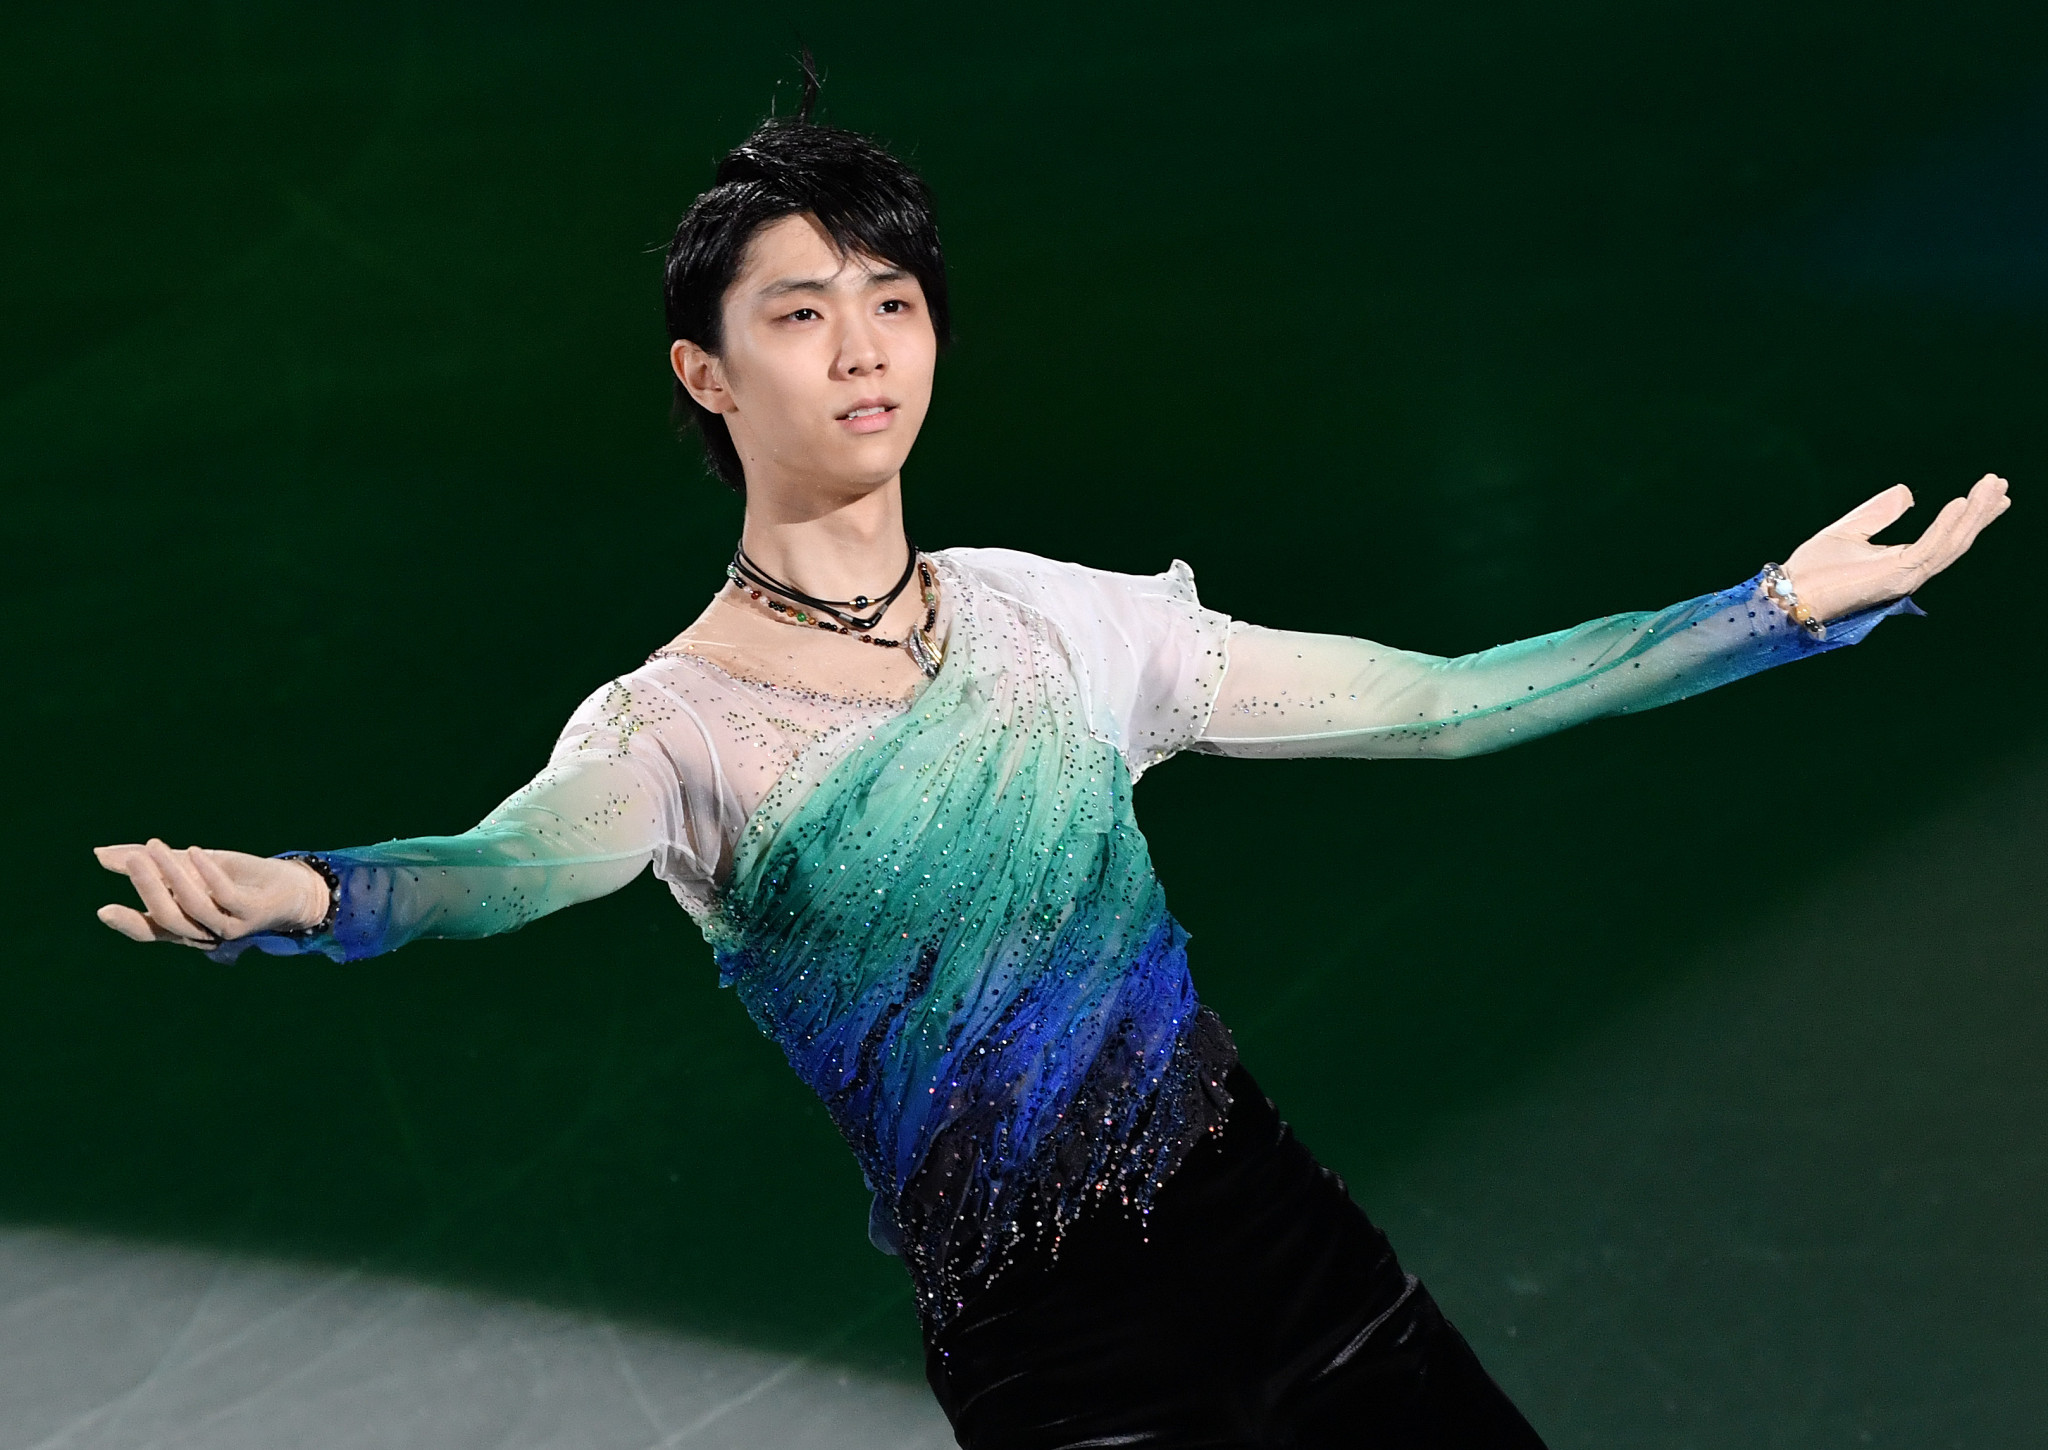 Japanese figure skating star Yuzuru Hanyu received two nominations for the inaugural International Skating Union Skating Awards ©Getty Images